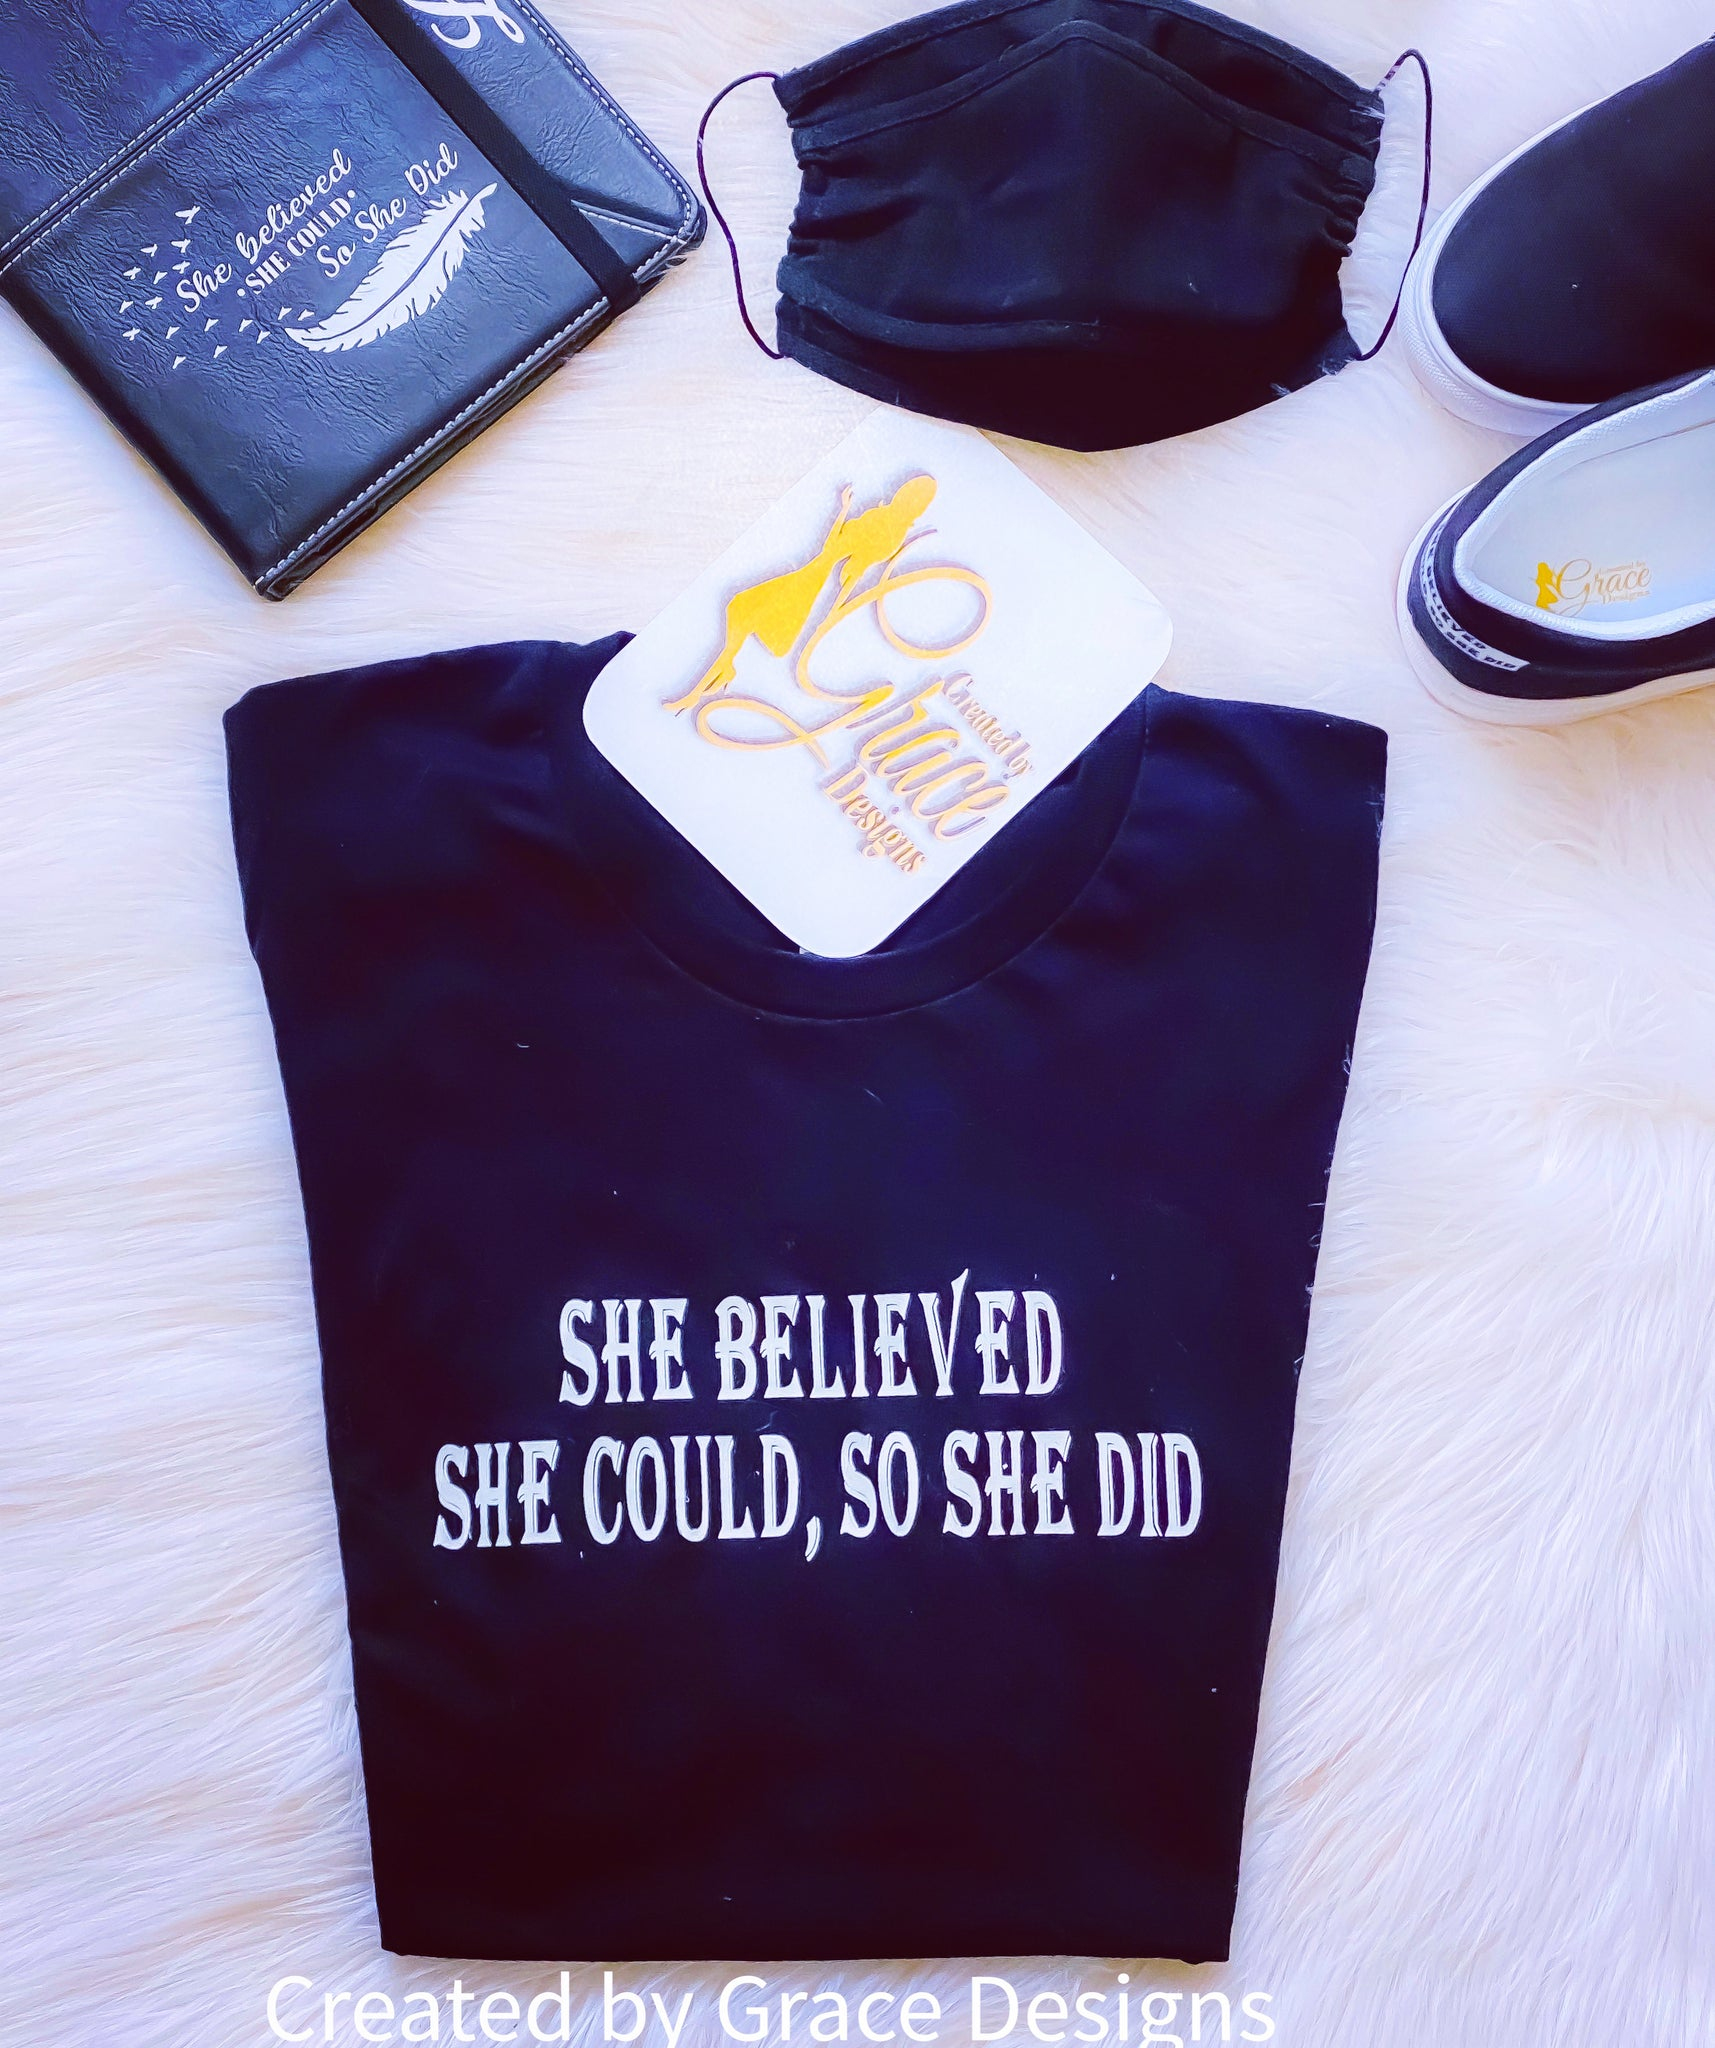 She Believed - Tee